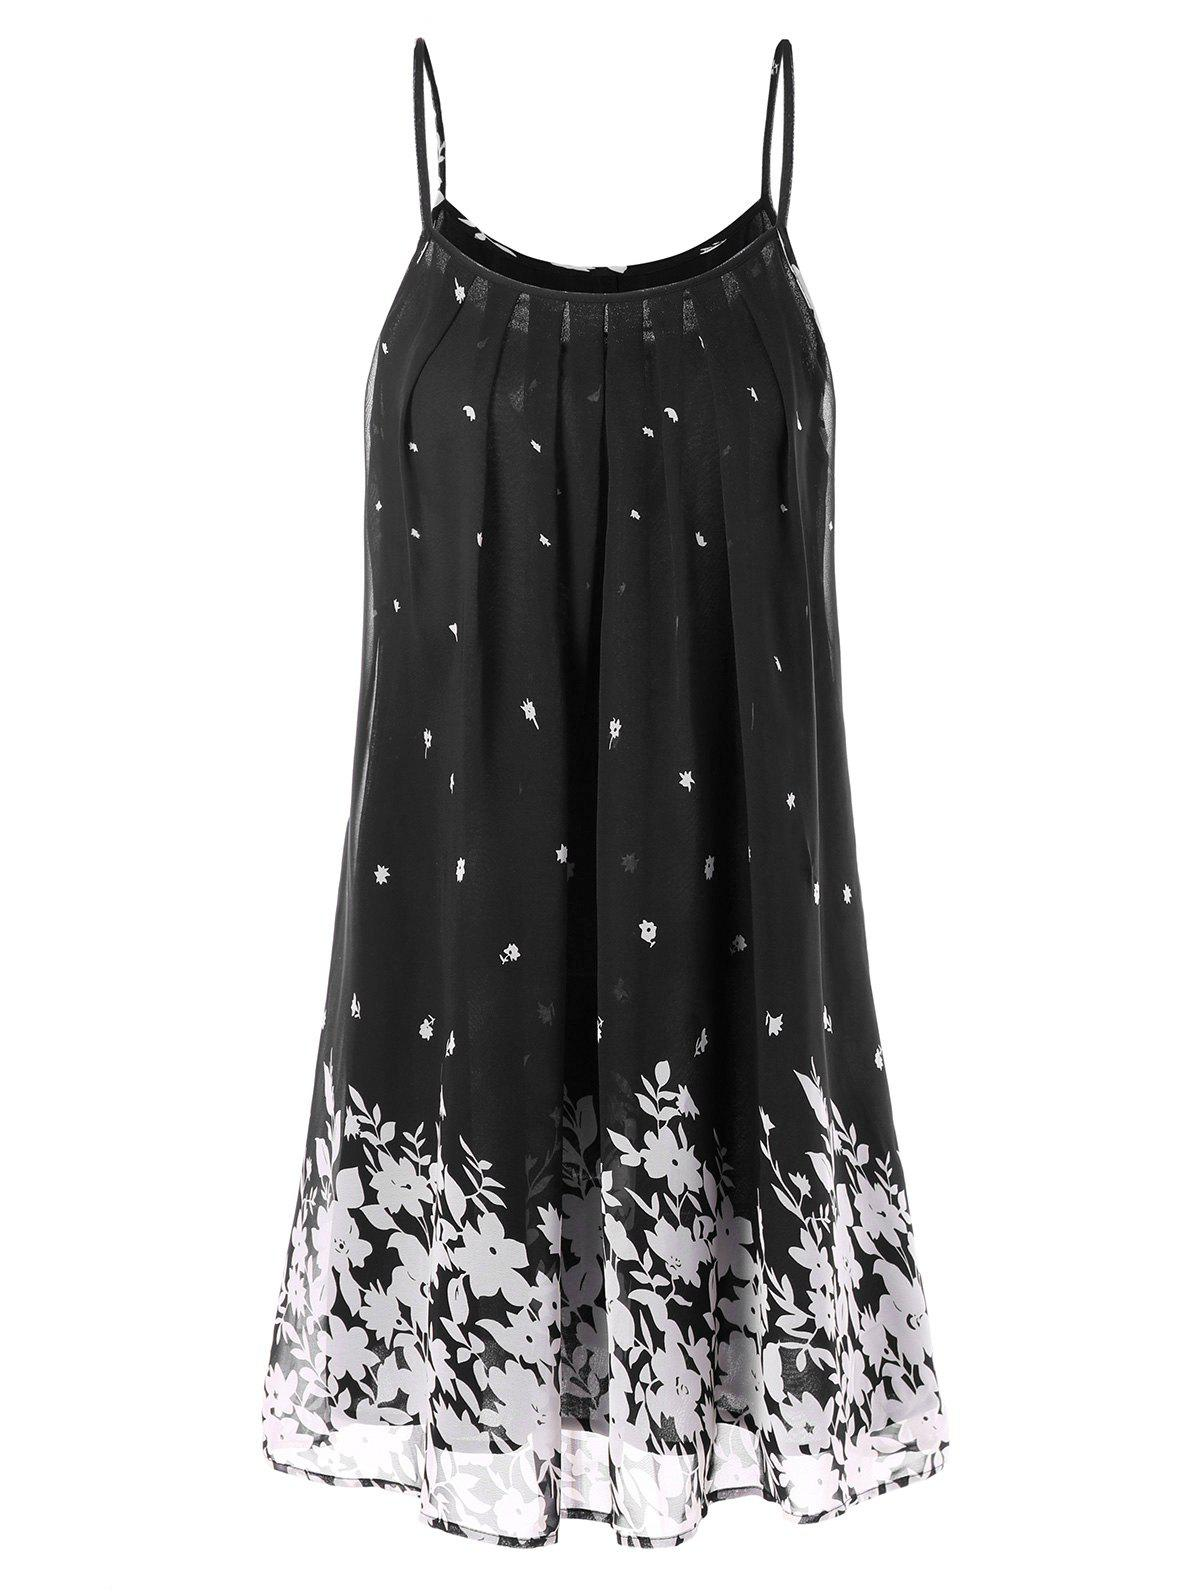 Spaghetti Strap Floral Chiffon Swing Dress - BLACK M